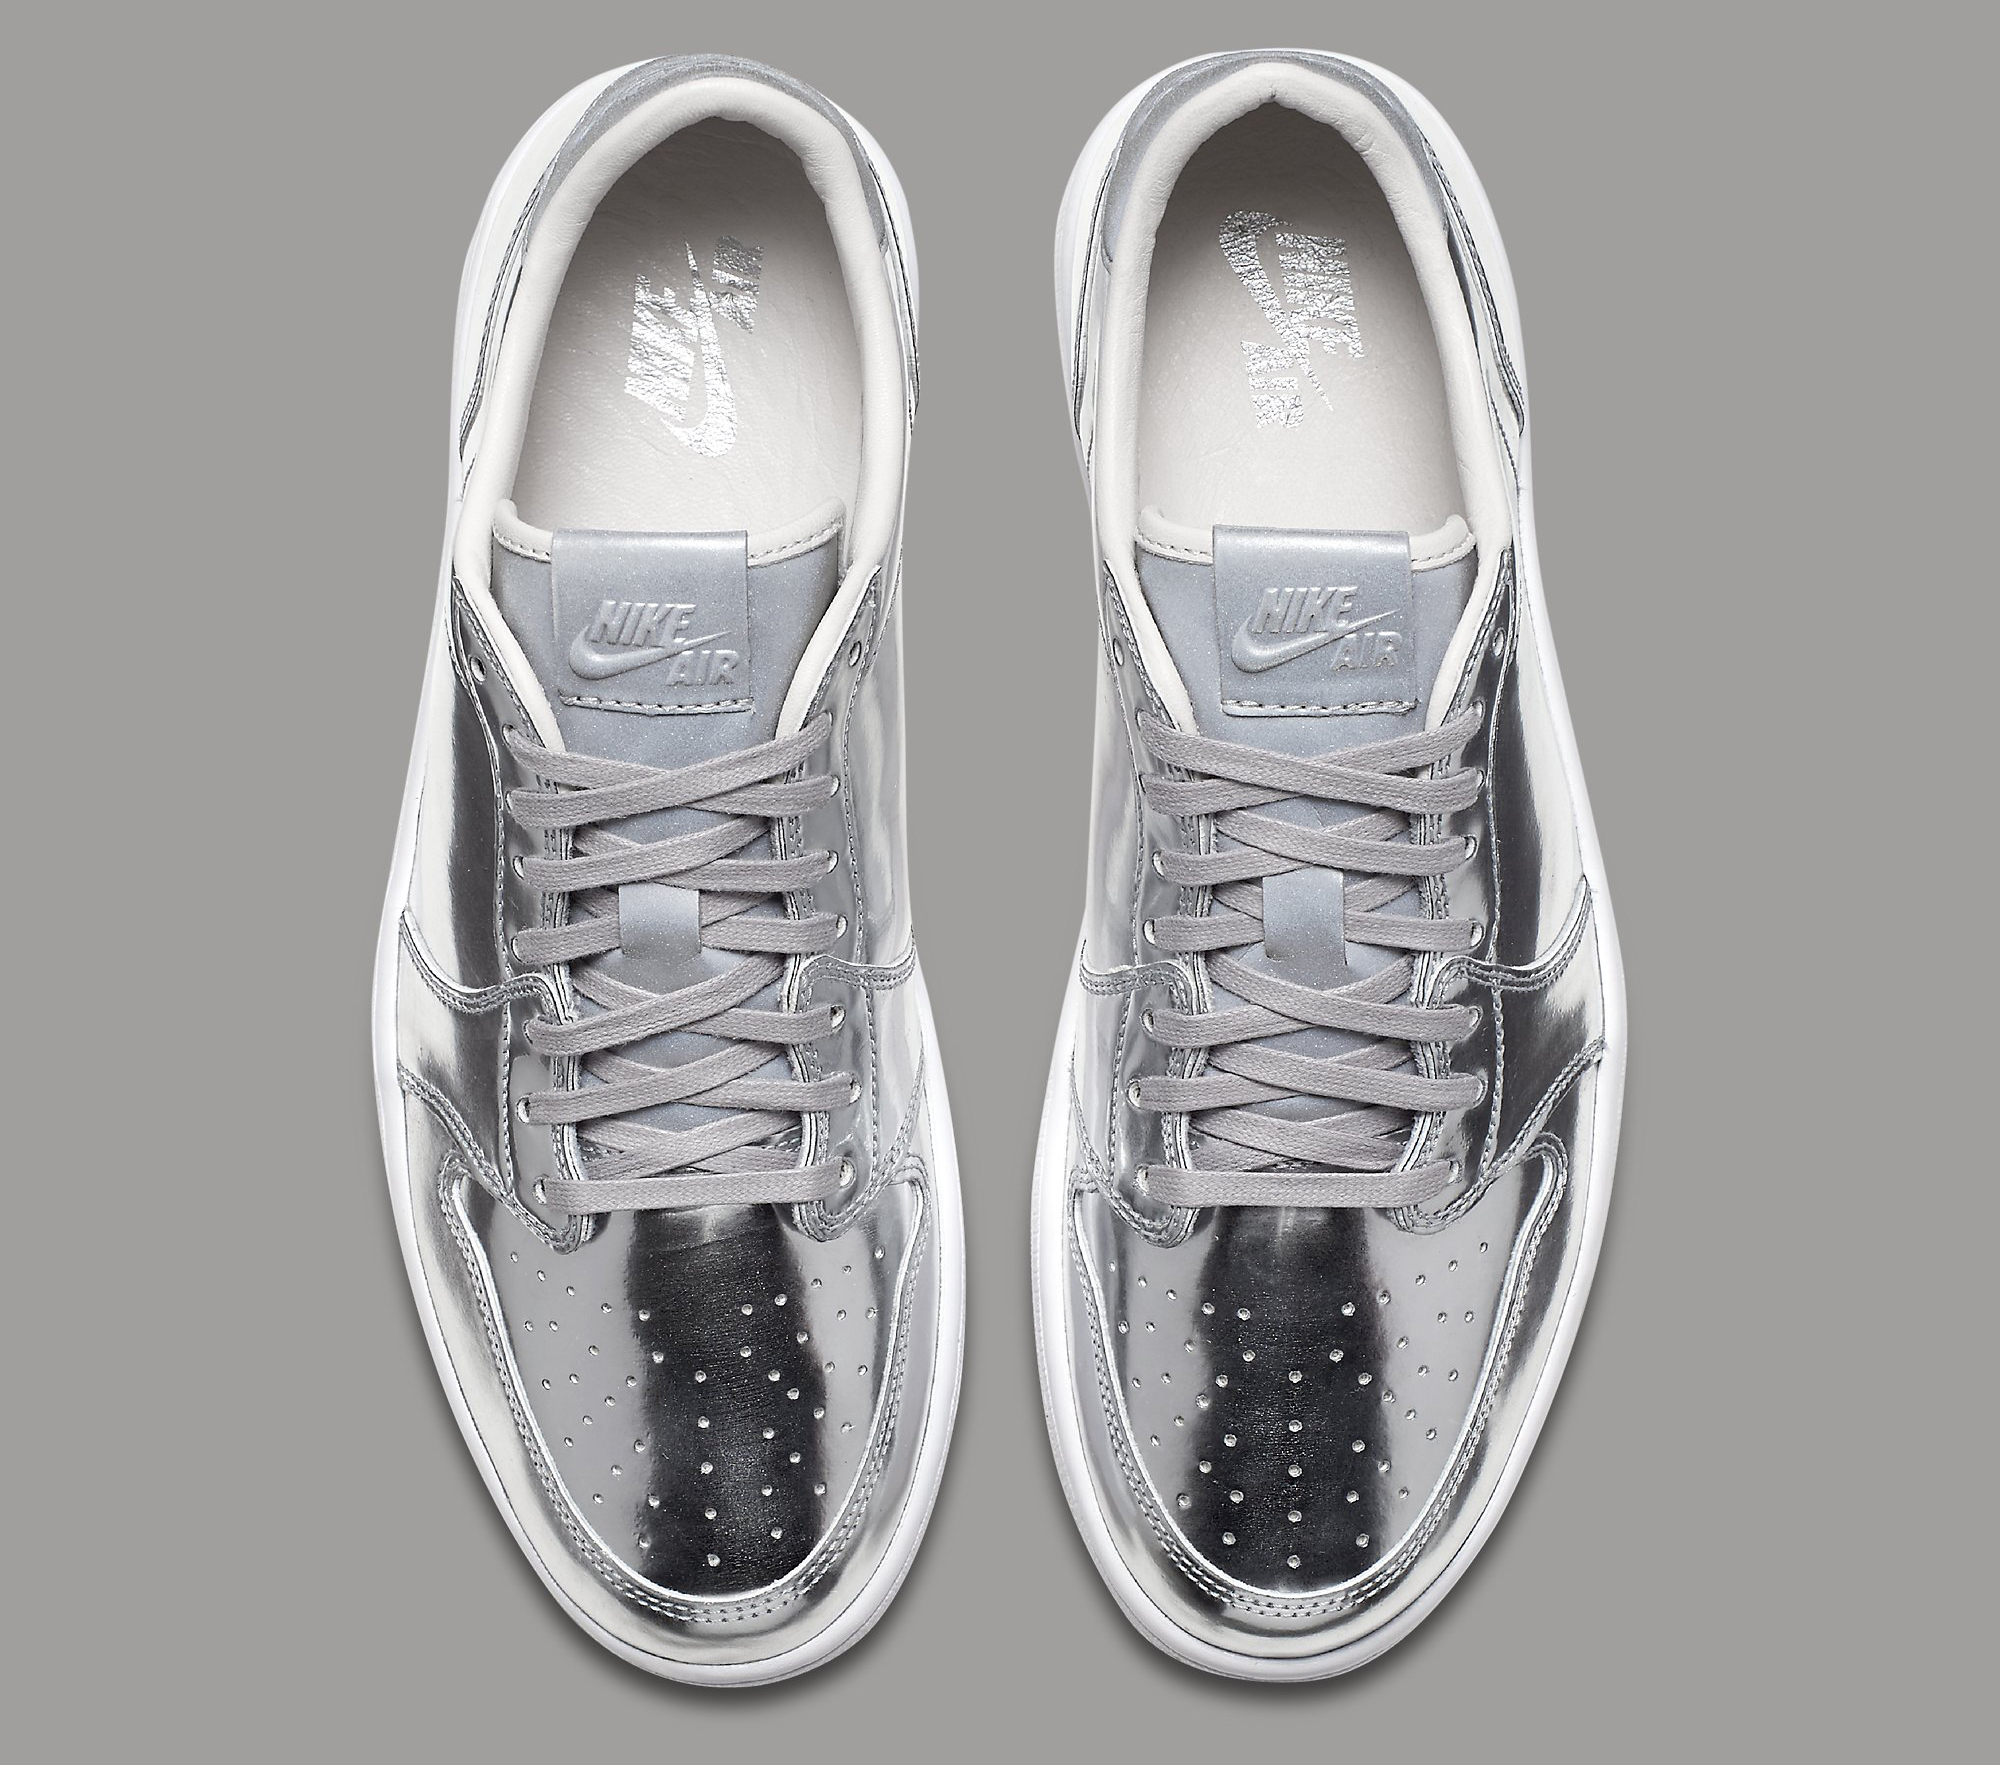 Silver Air Jordan 1 Low 852549-003 Top